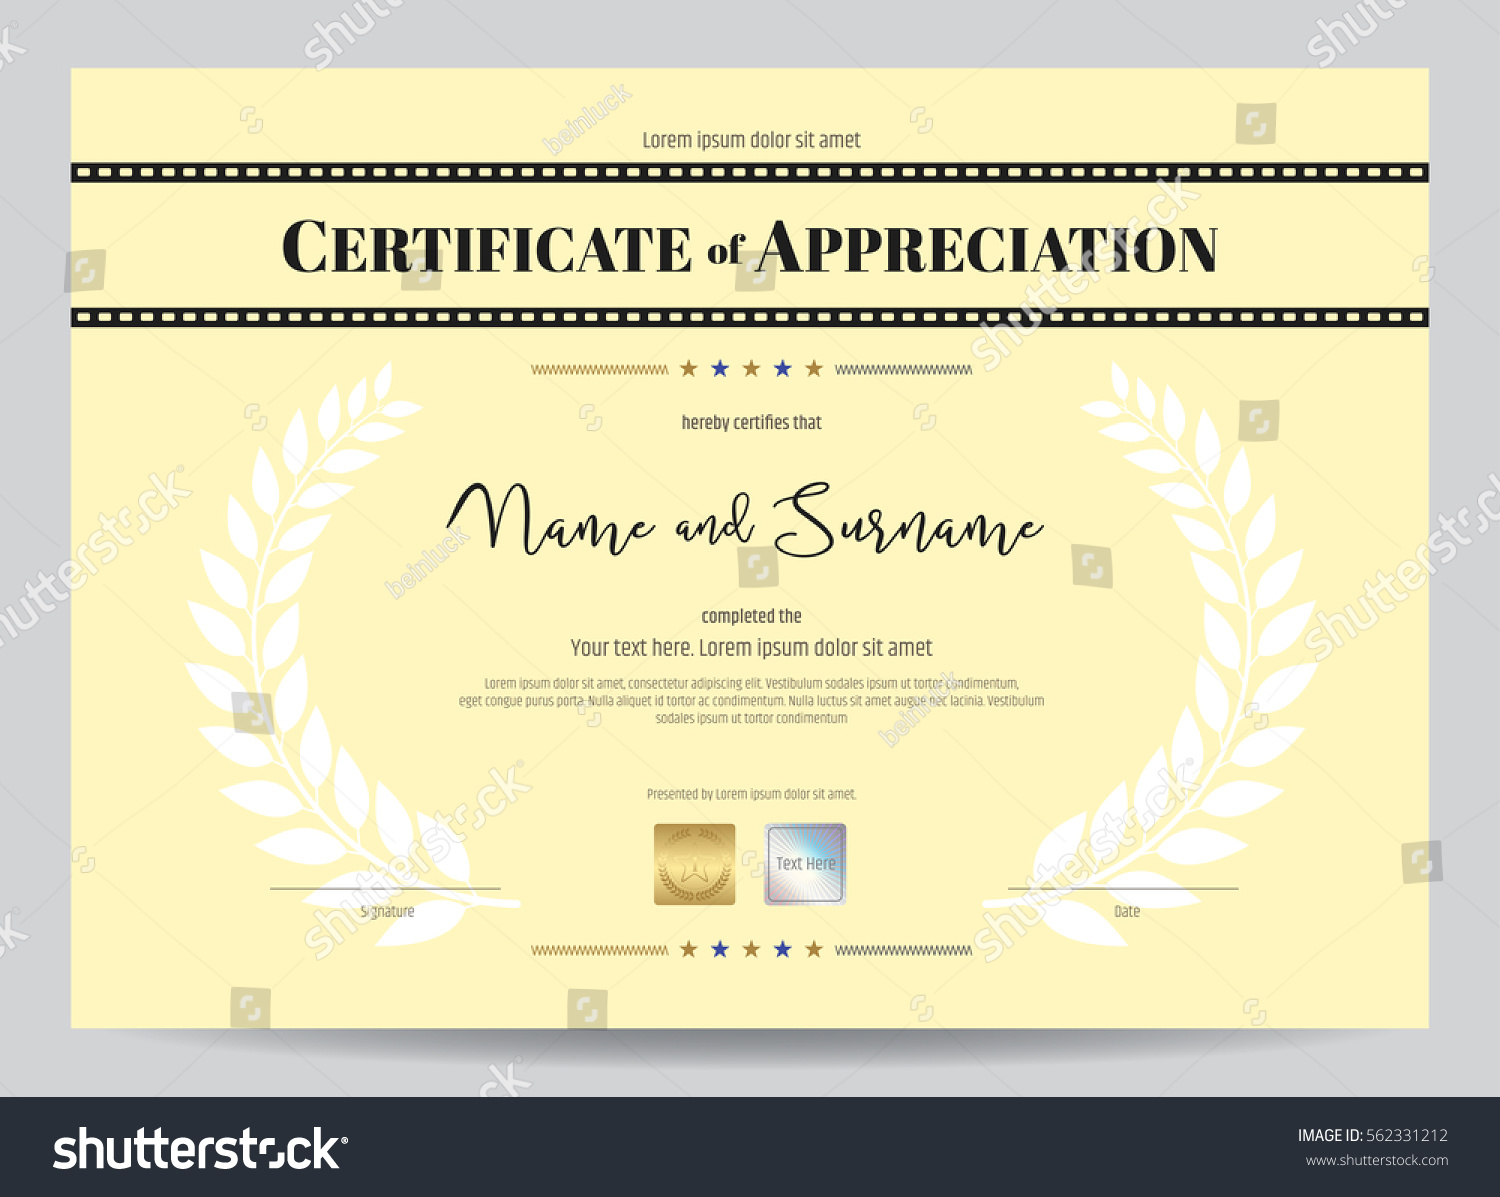 Certificate appreciation template movie film stripe stock vector certificate of appreciation template with movie film stripe header and award laurel crest yadclub Image collections